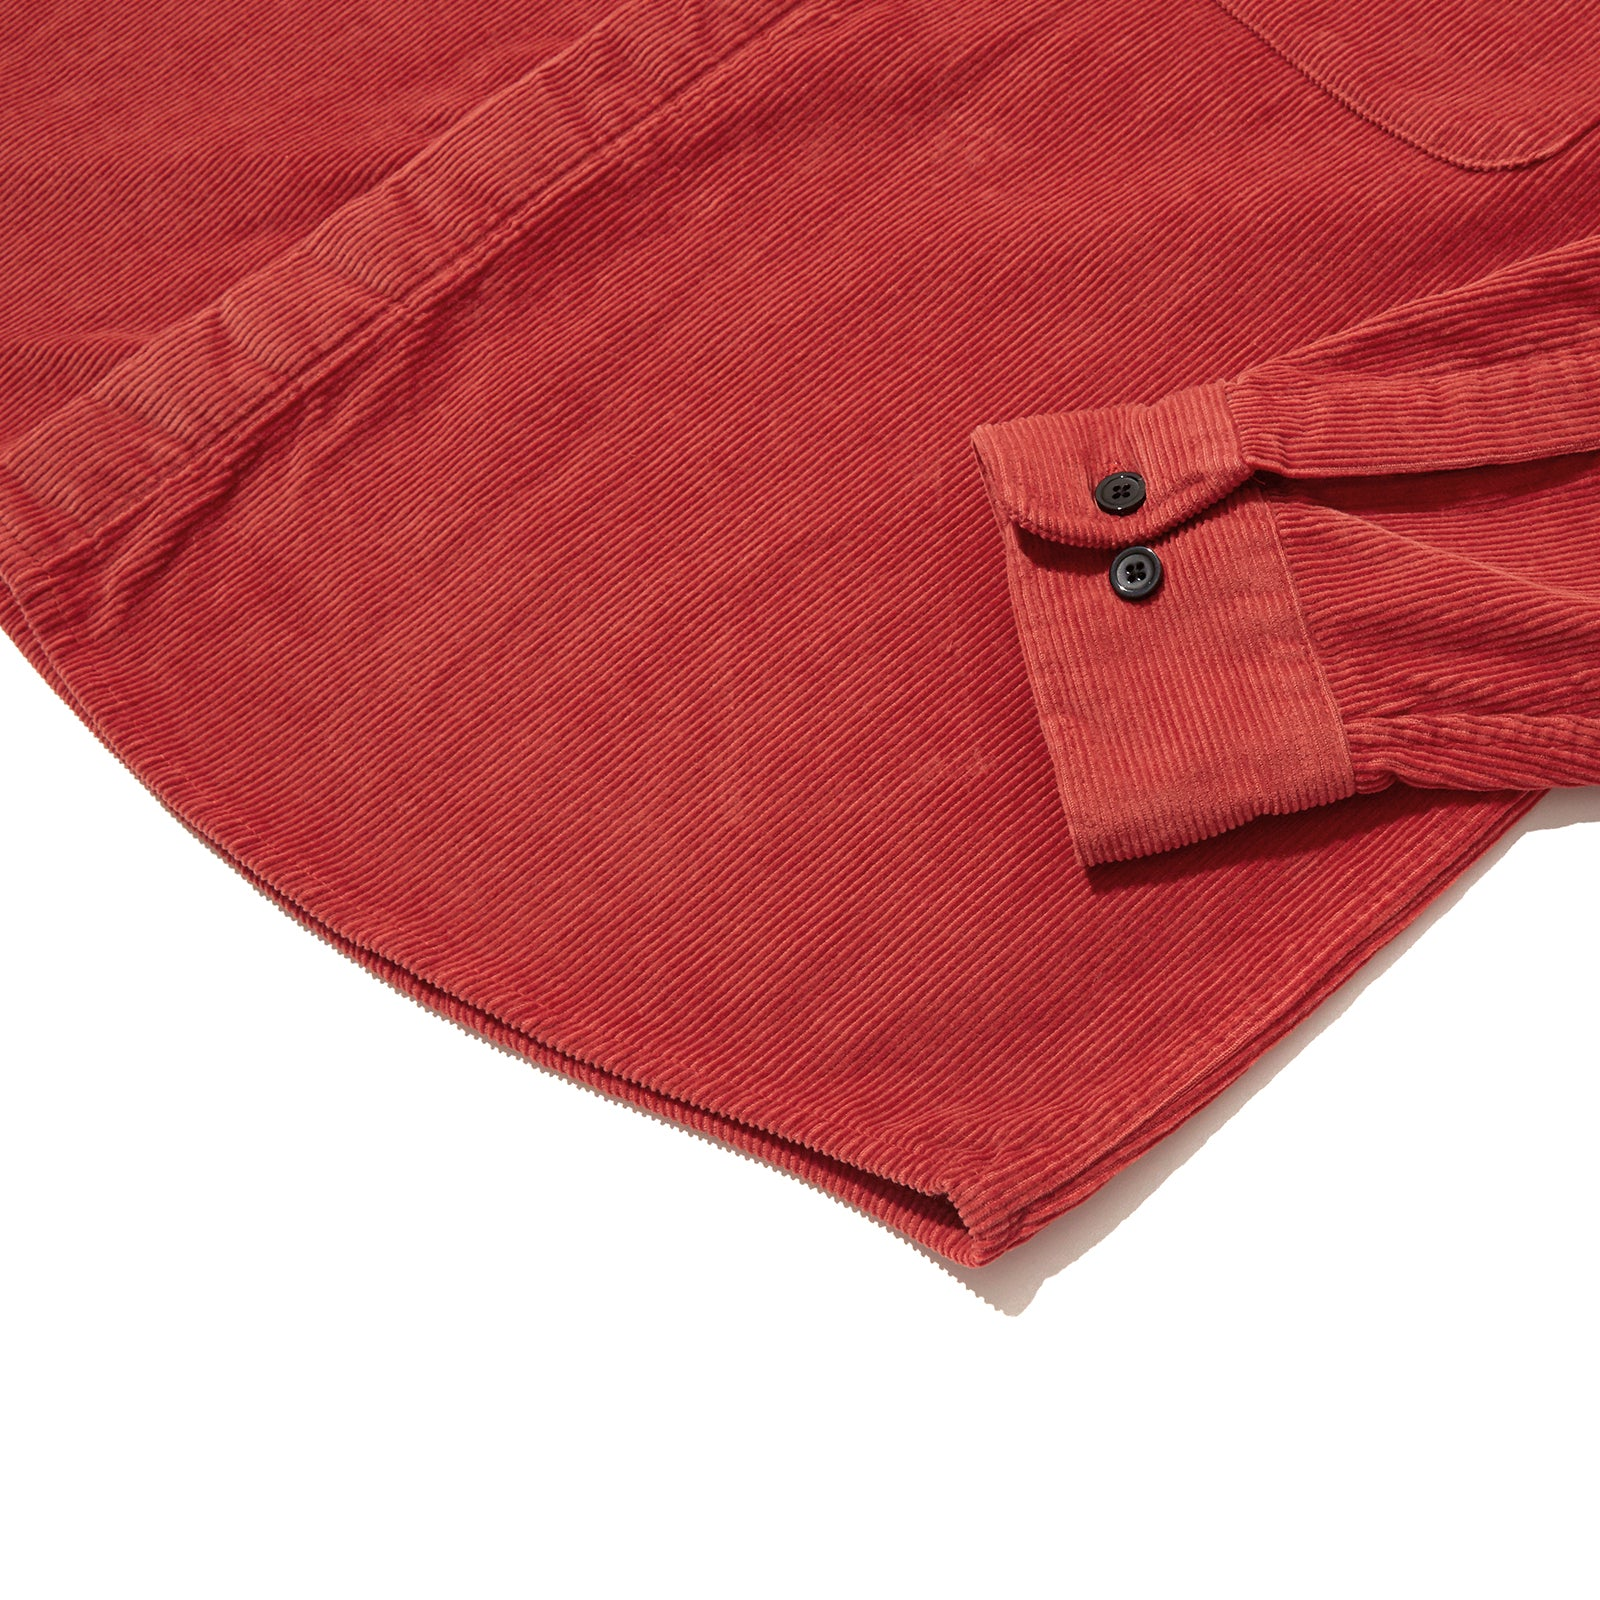 OVERSIZED CORDUROY SHIRT JK (RED)